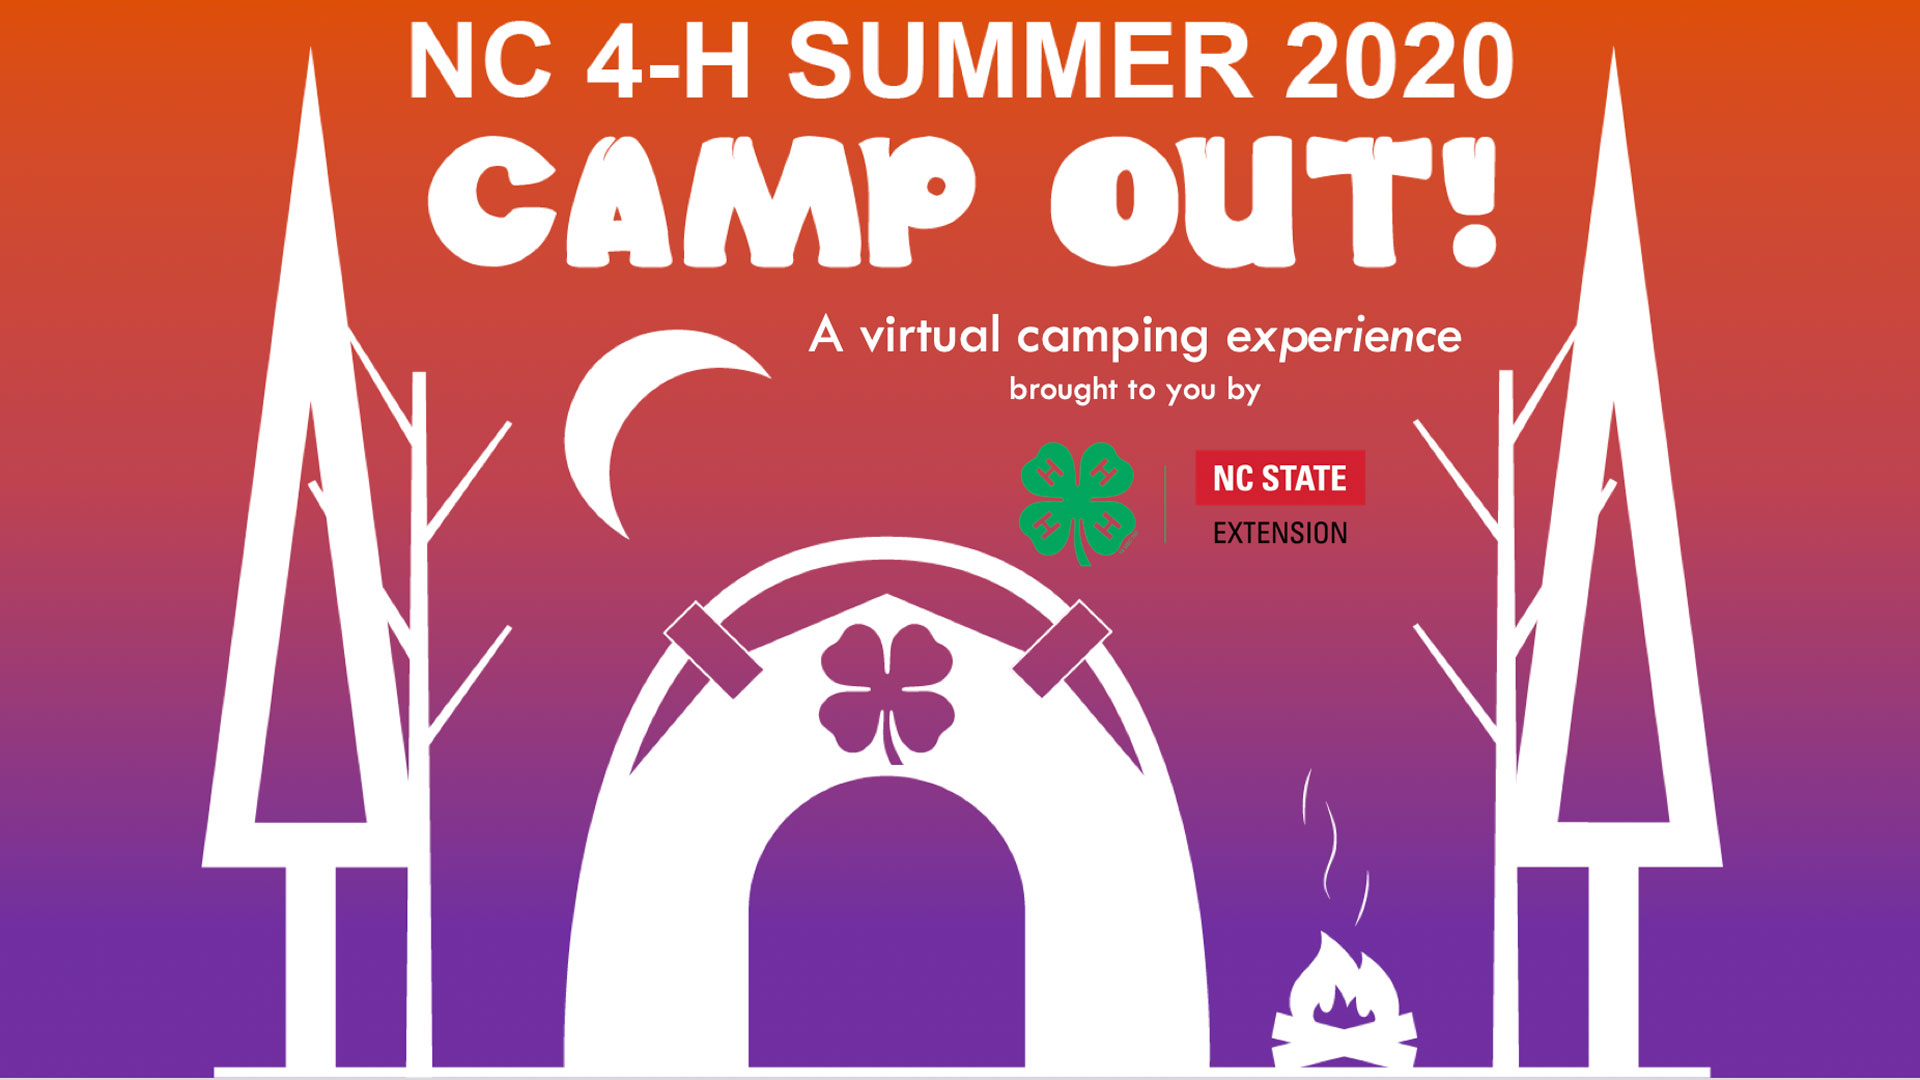 The NC 4-H Summer CAMP OUT! FREE on June 22 – 26, 2020